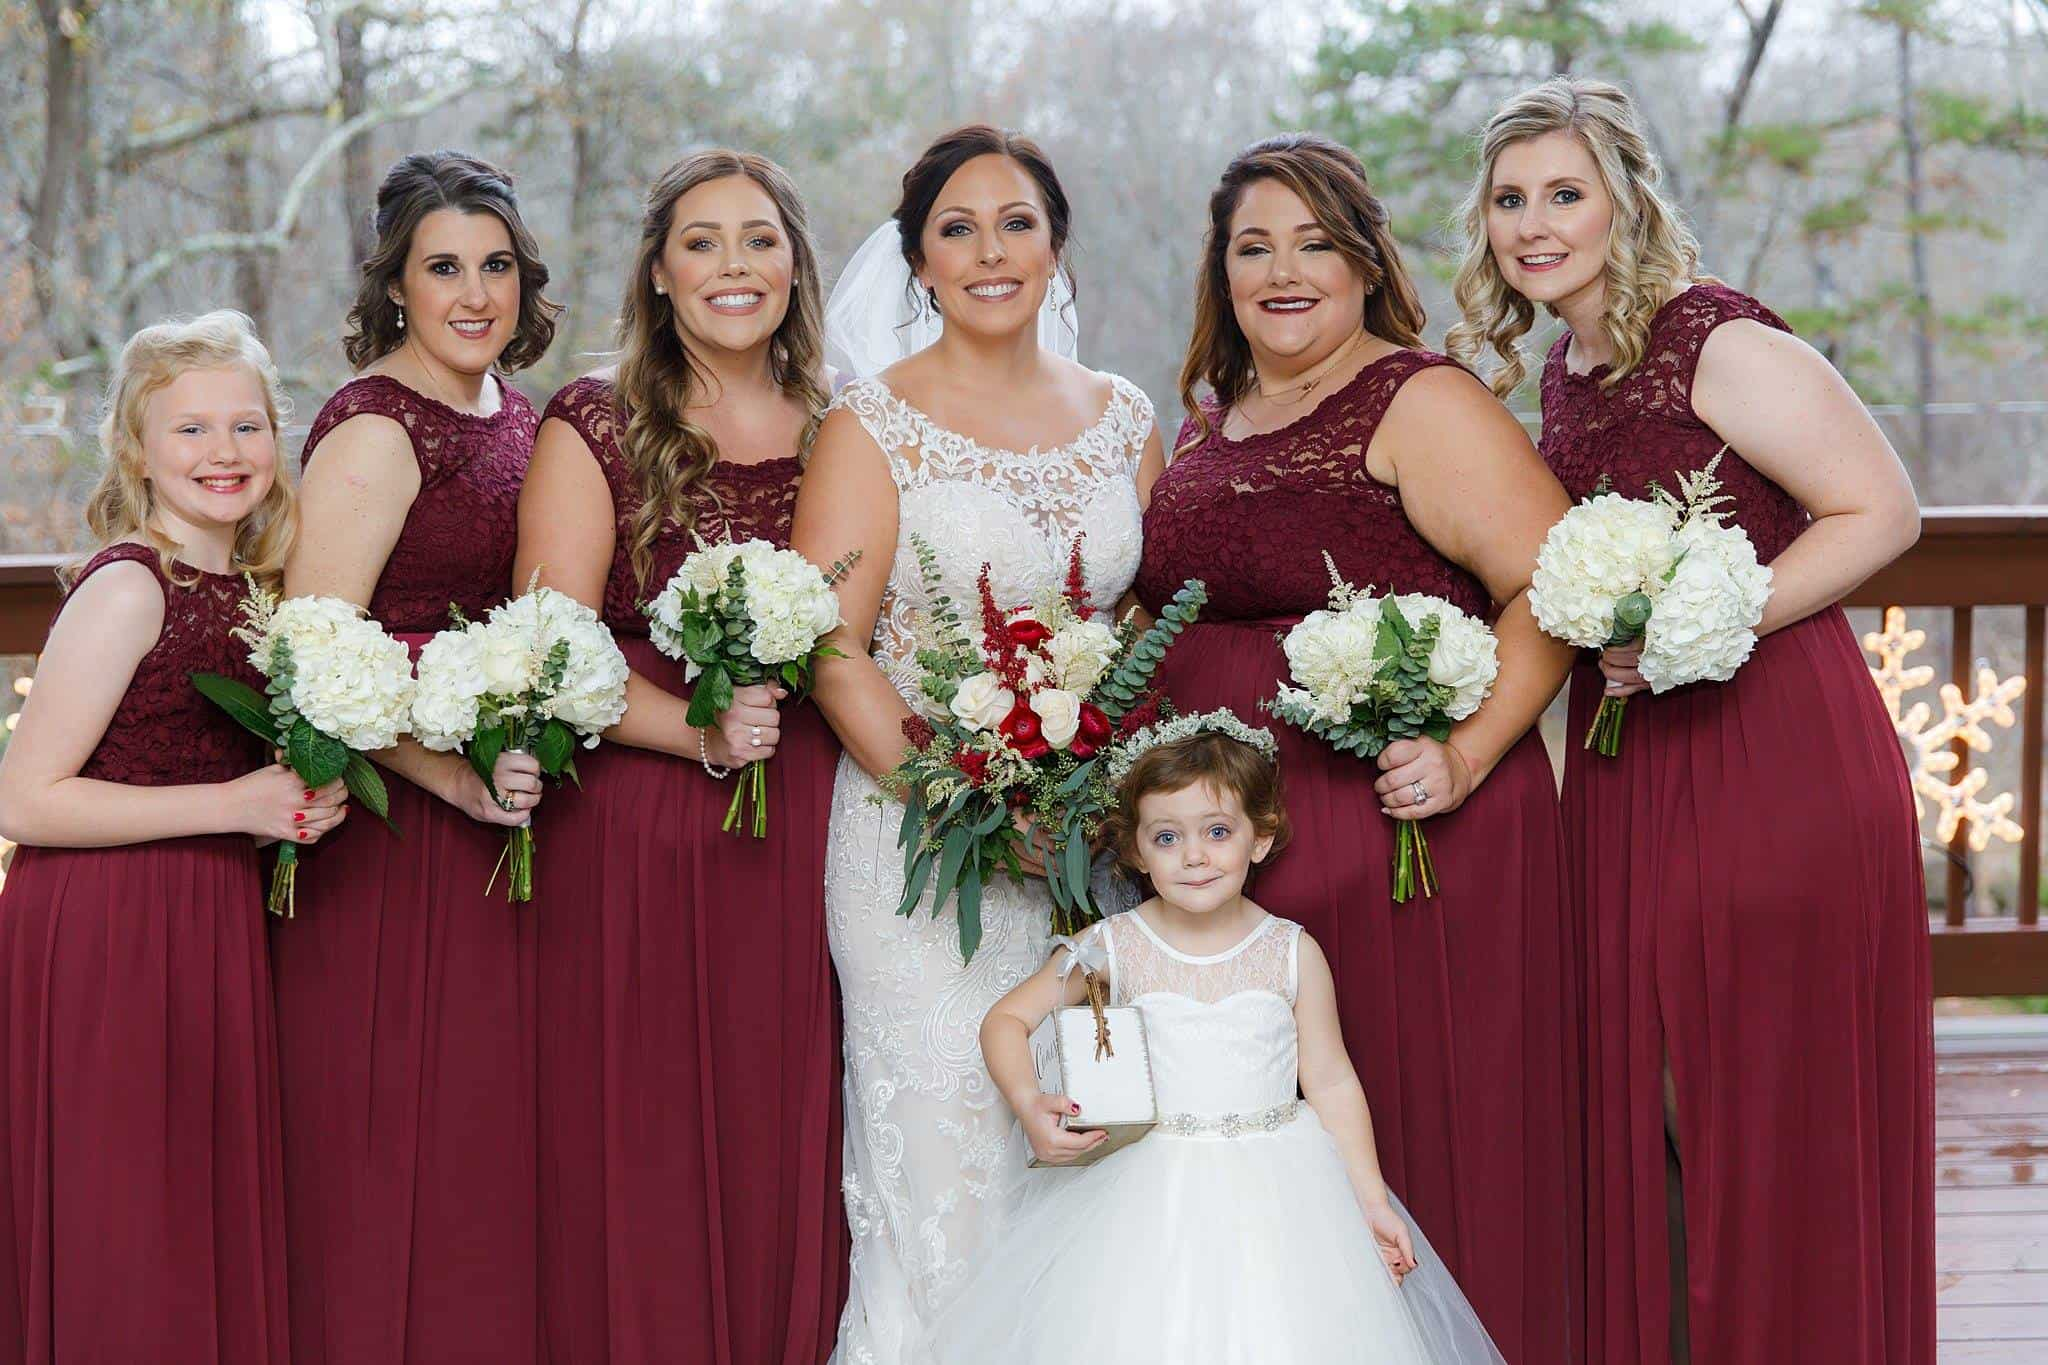 Bride in Lace Gown with Bridesmaids in Red Lace bridesmaids dresses